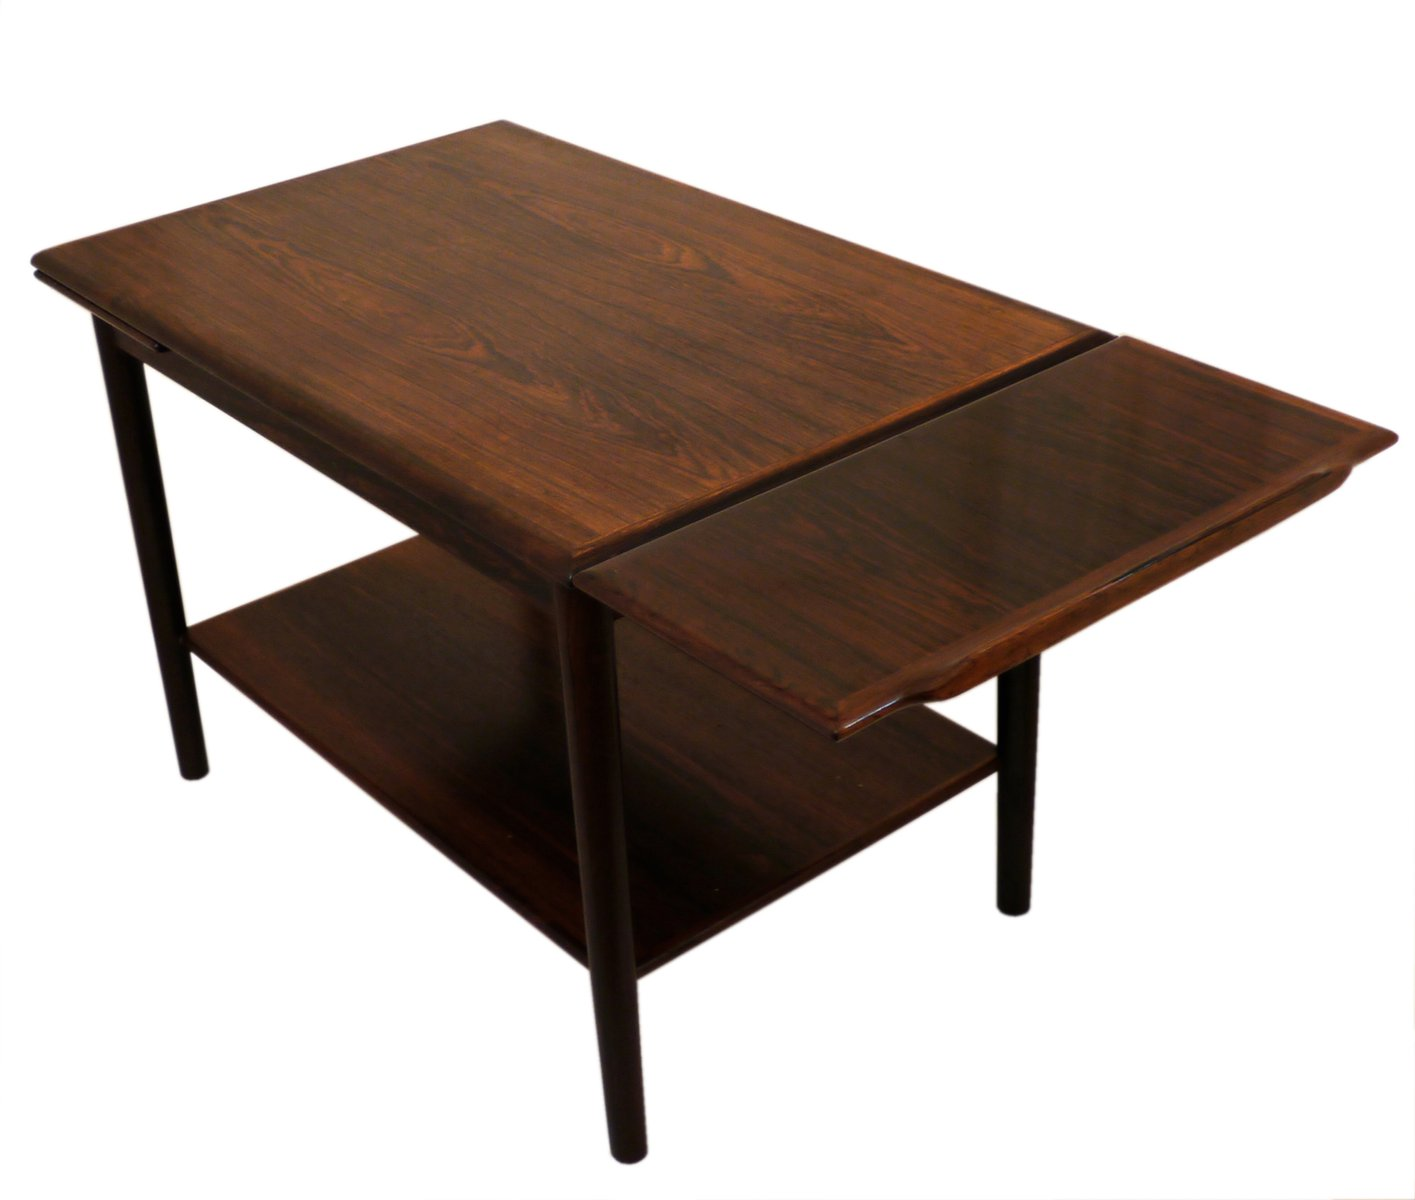 Danish Mid Century Modern Occasional Side Coffee Table Rosewood: Danish Mid-Century Expandable Rosewood Coffee Table, 1960s